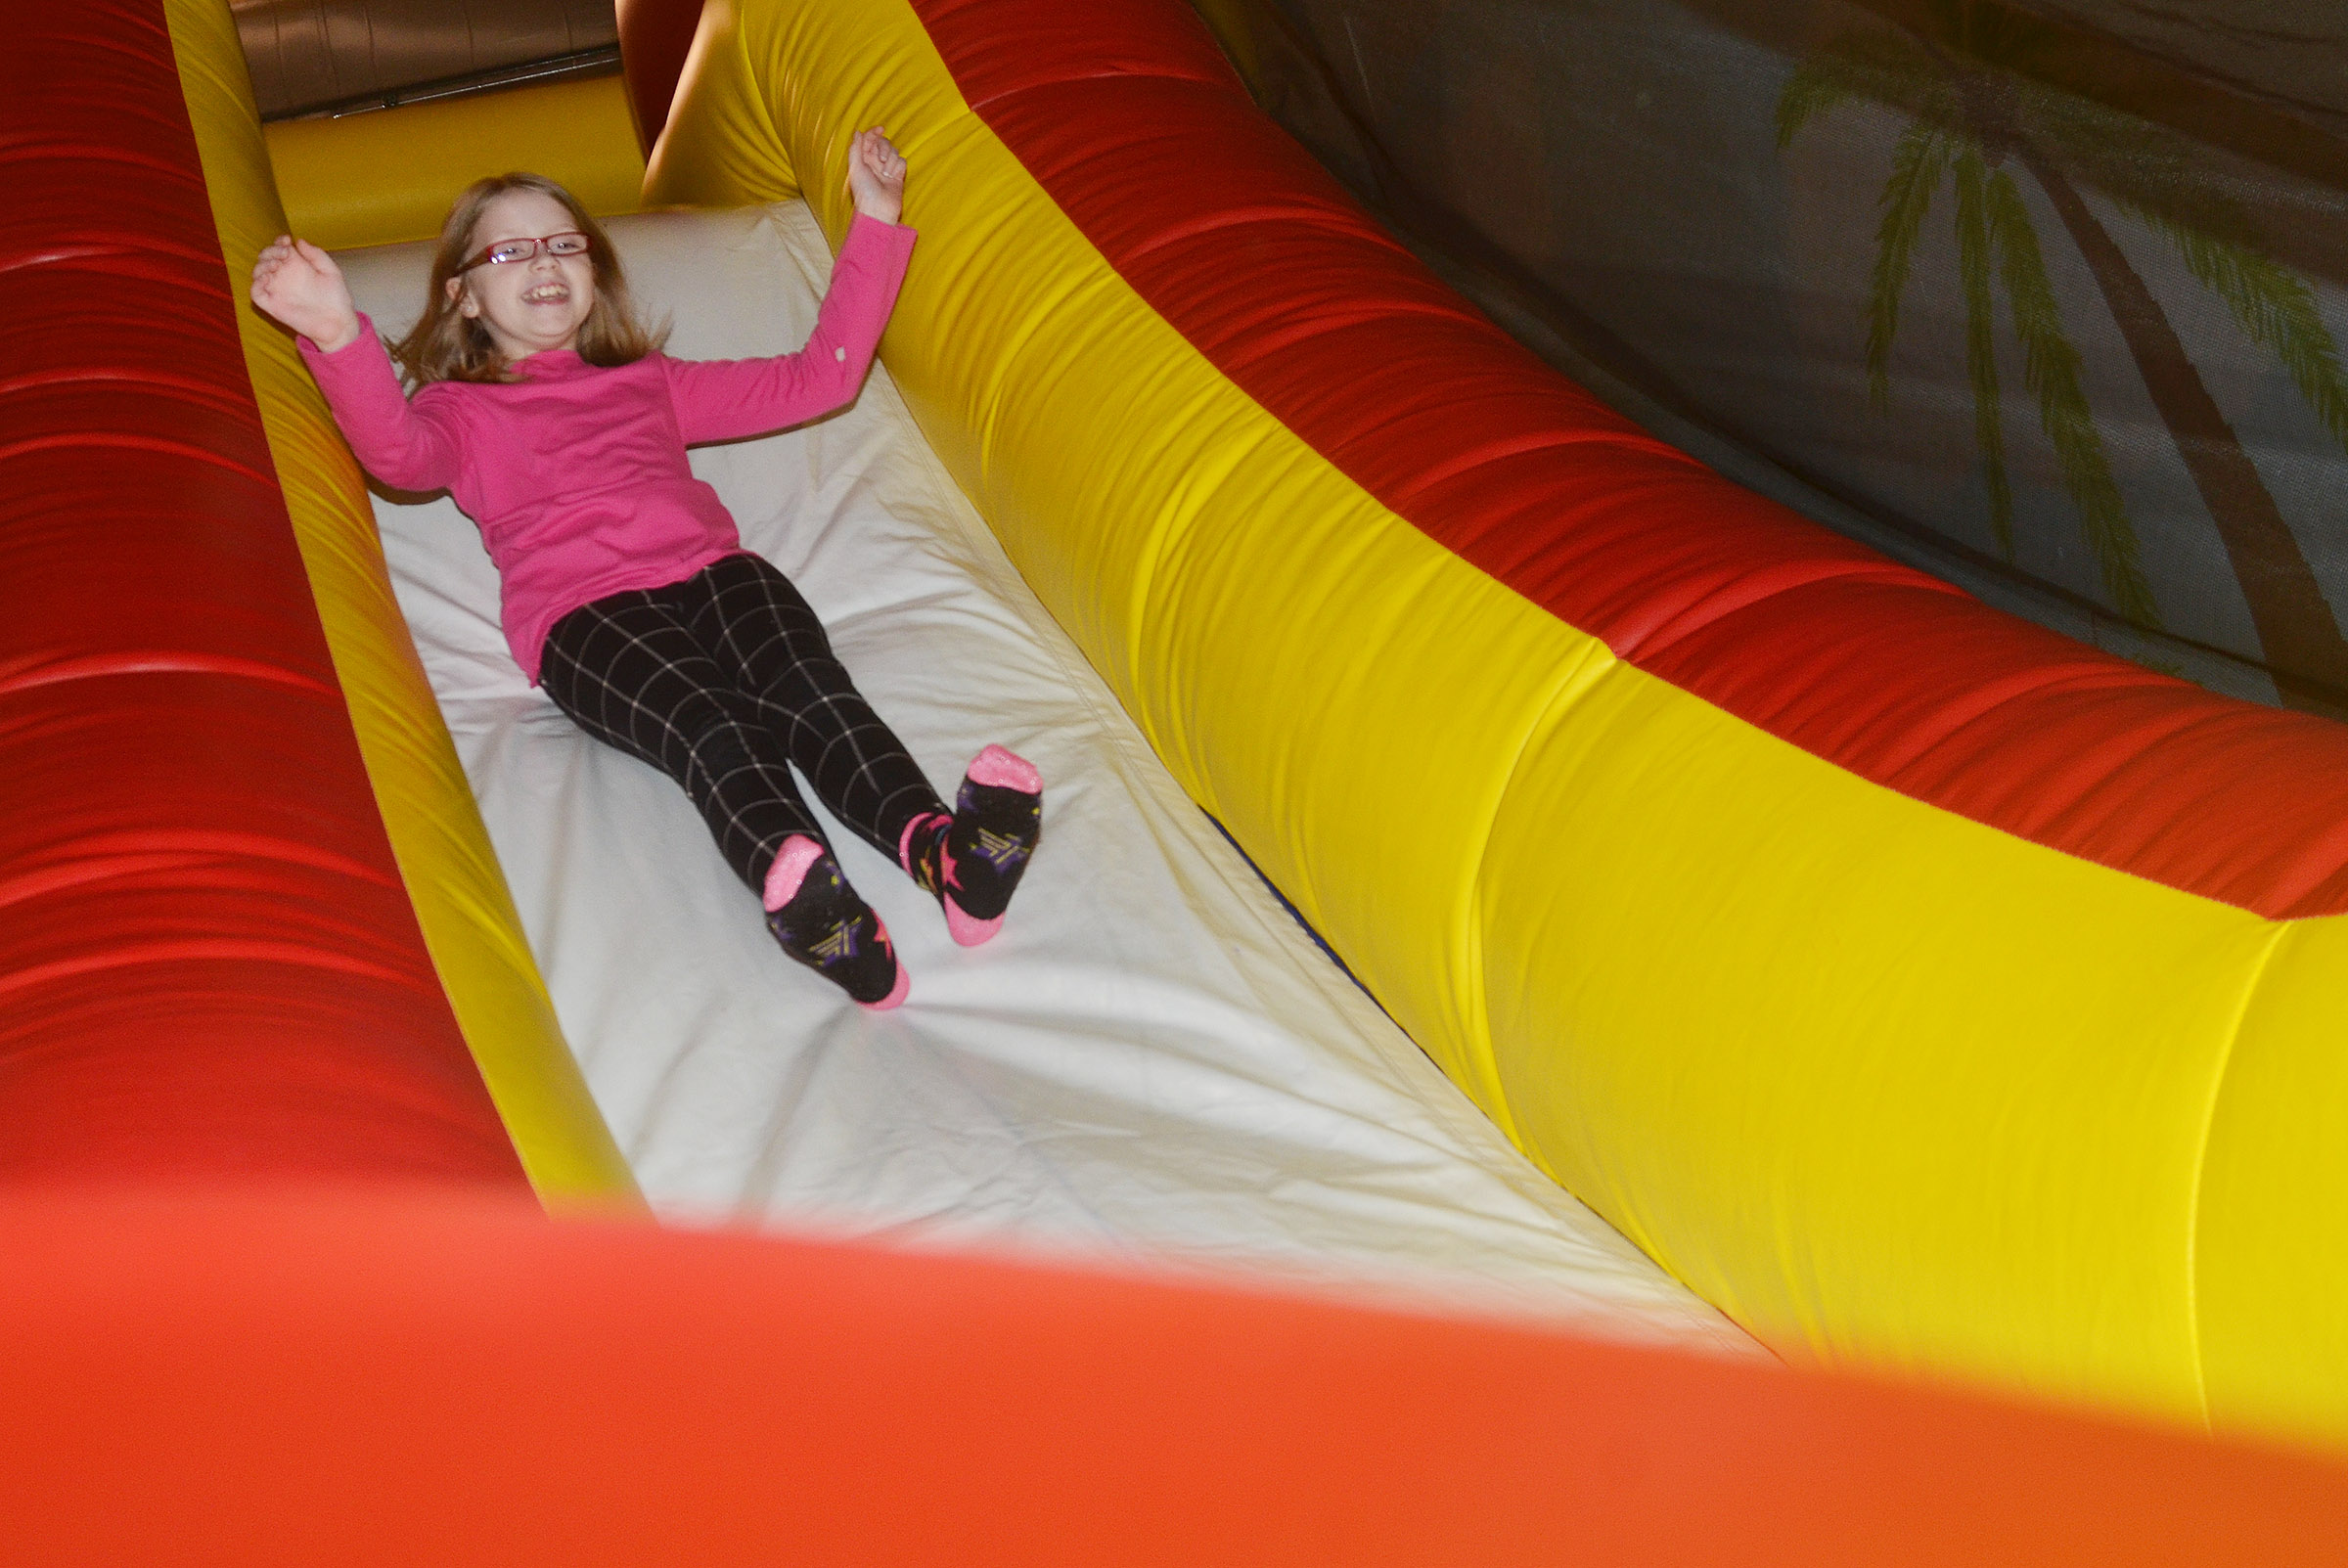 CES fourth-grader Gracie Pendleton slides down an inflatable.